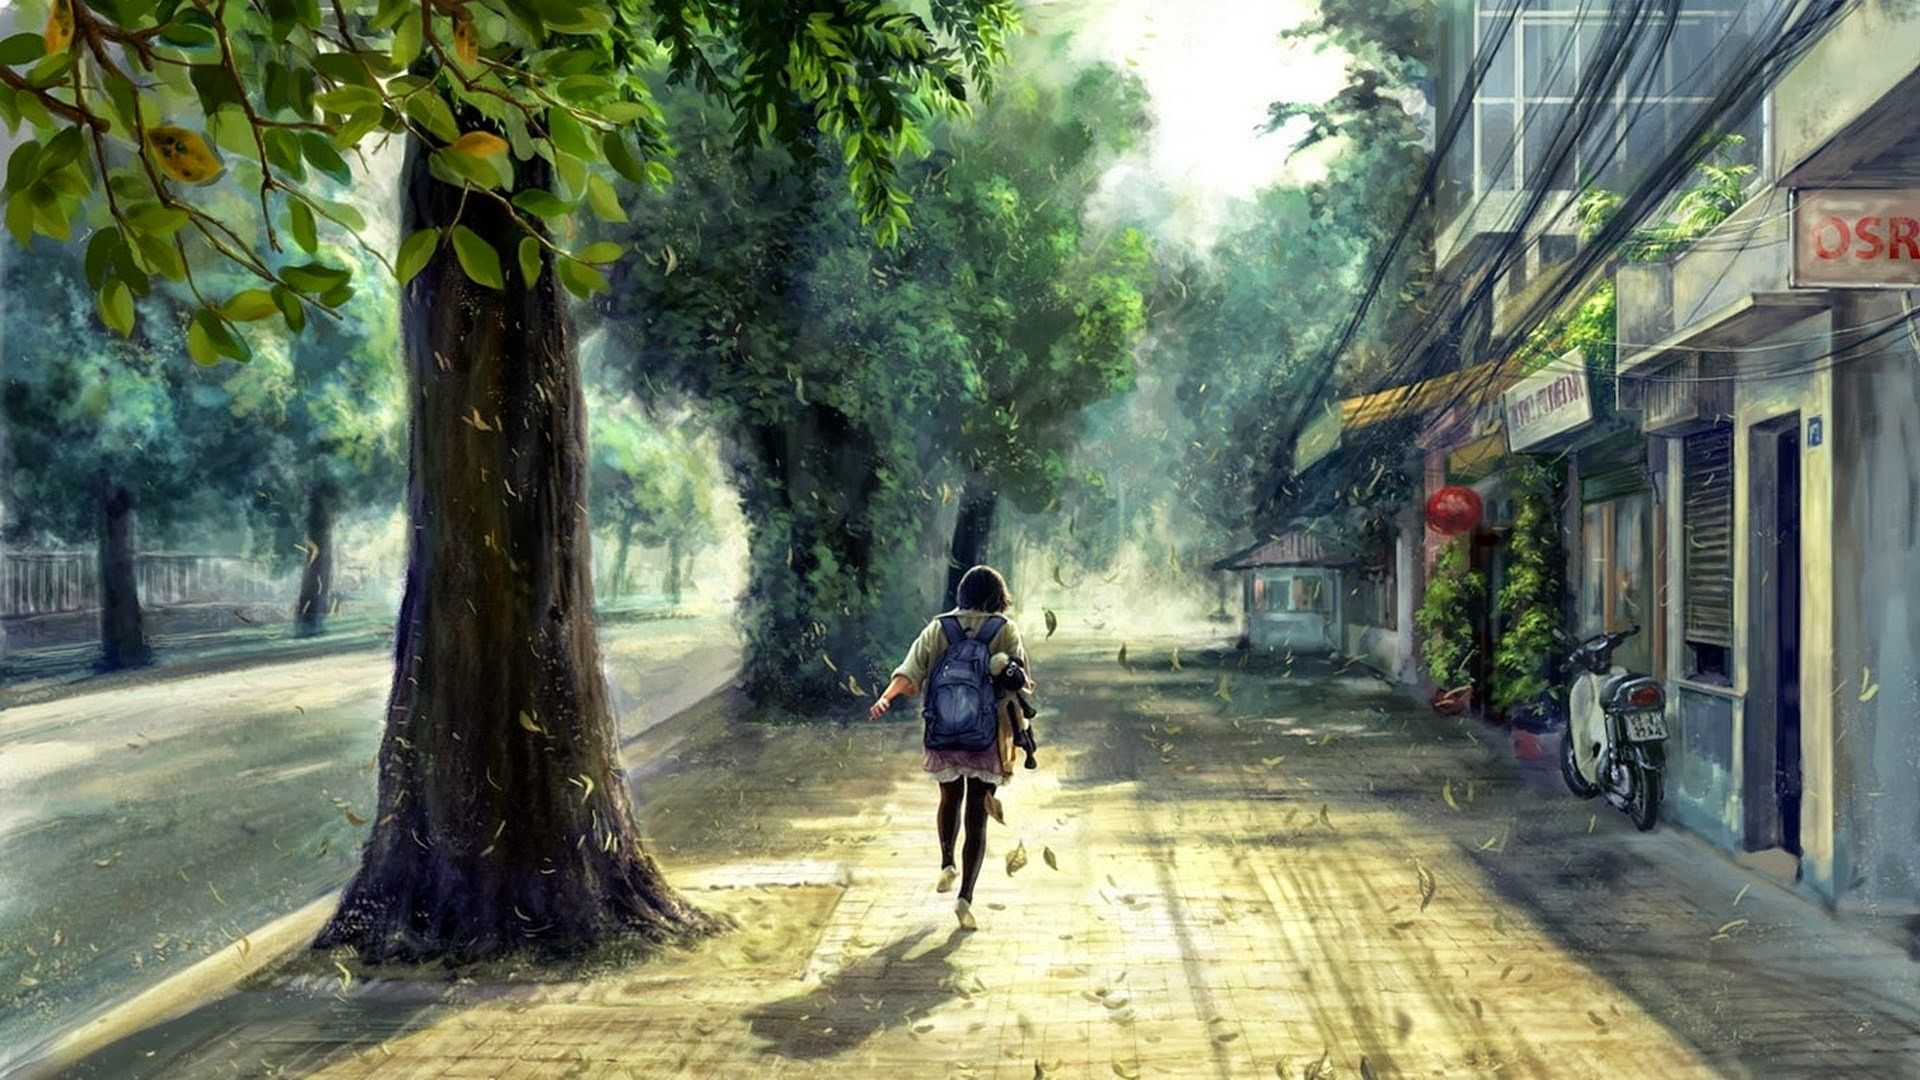 Anime Scenery Street Wallpaper Hd Desktop 48929 Wallpaper Anime